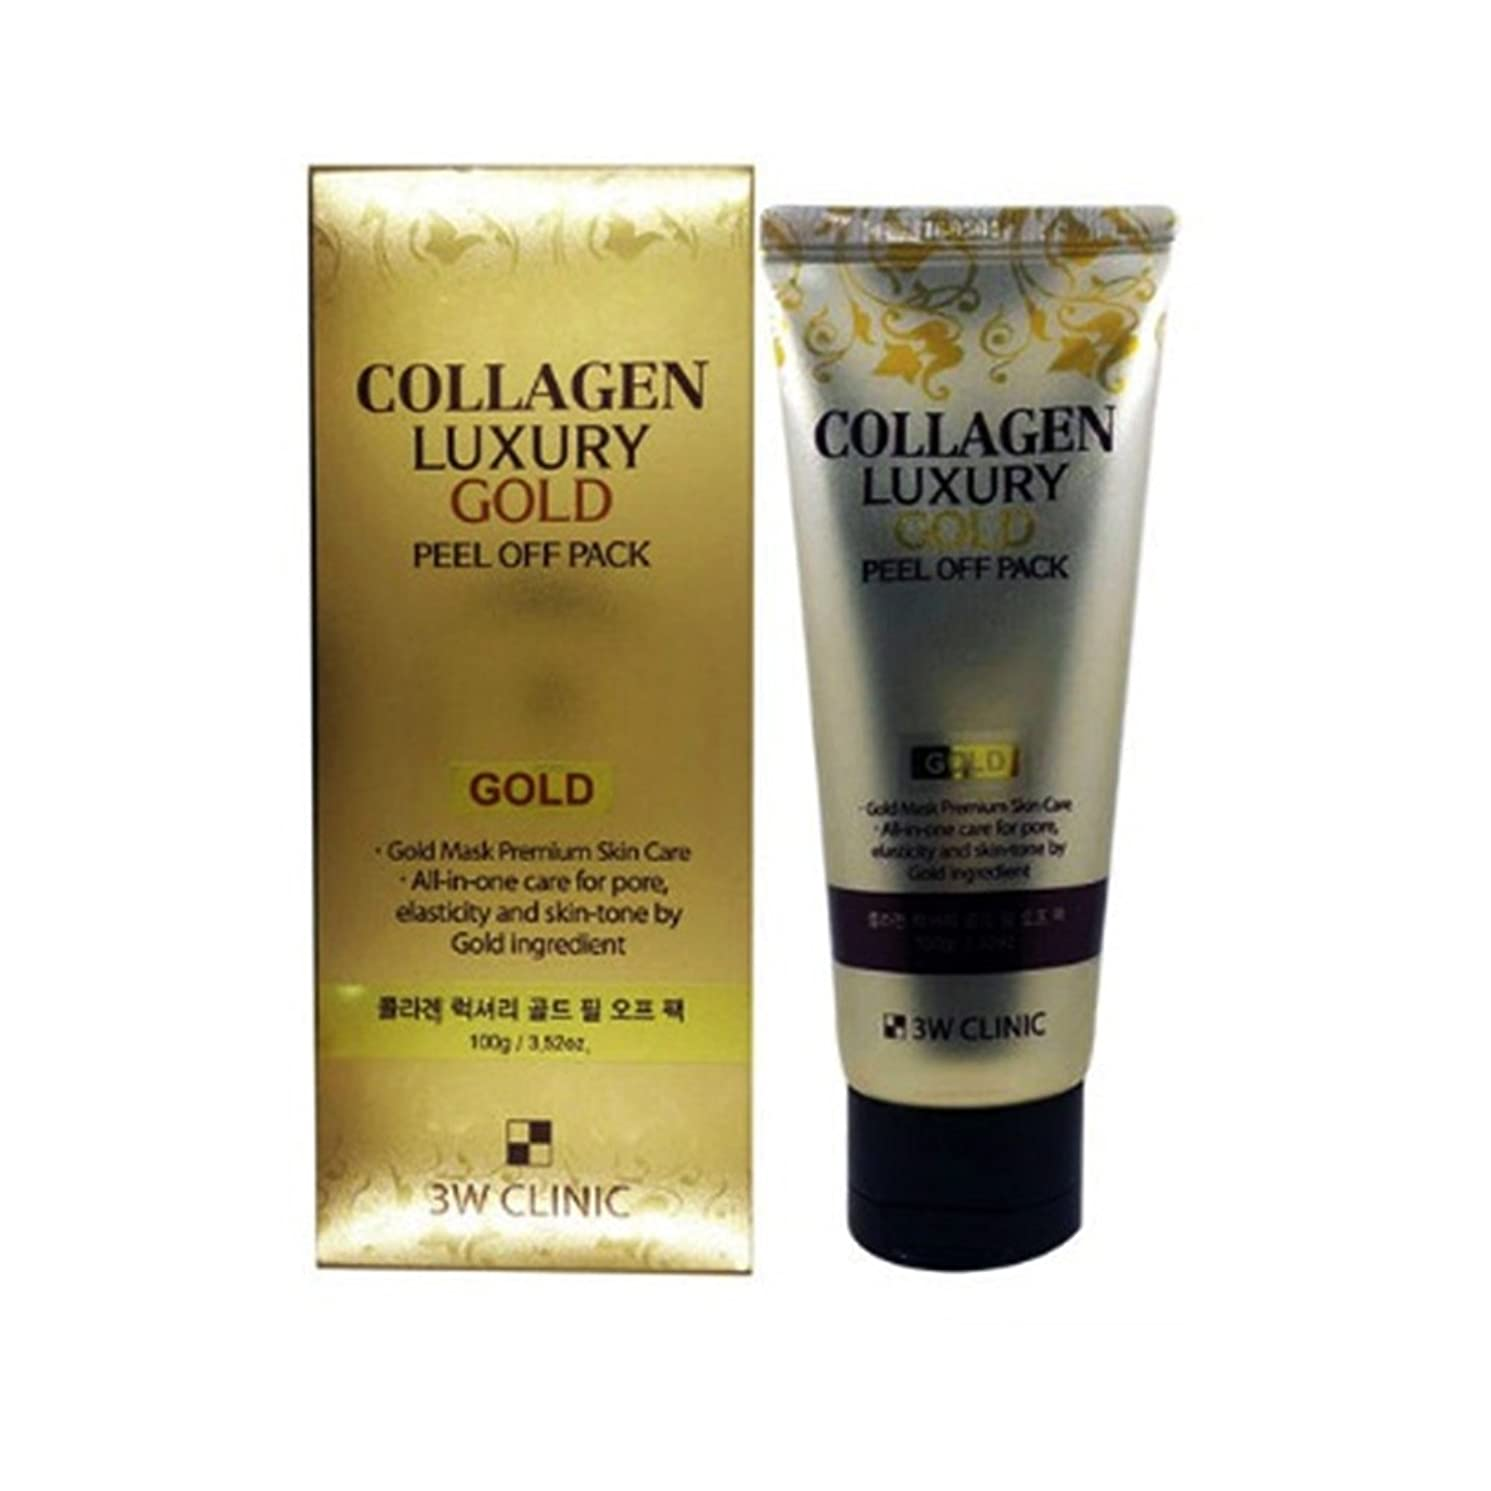 回復最も早い月【韓国 3W CLINIC】COLLAGEN LUXURY GOLD PEEL OFF PACK 100g